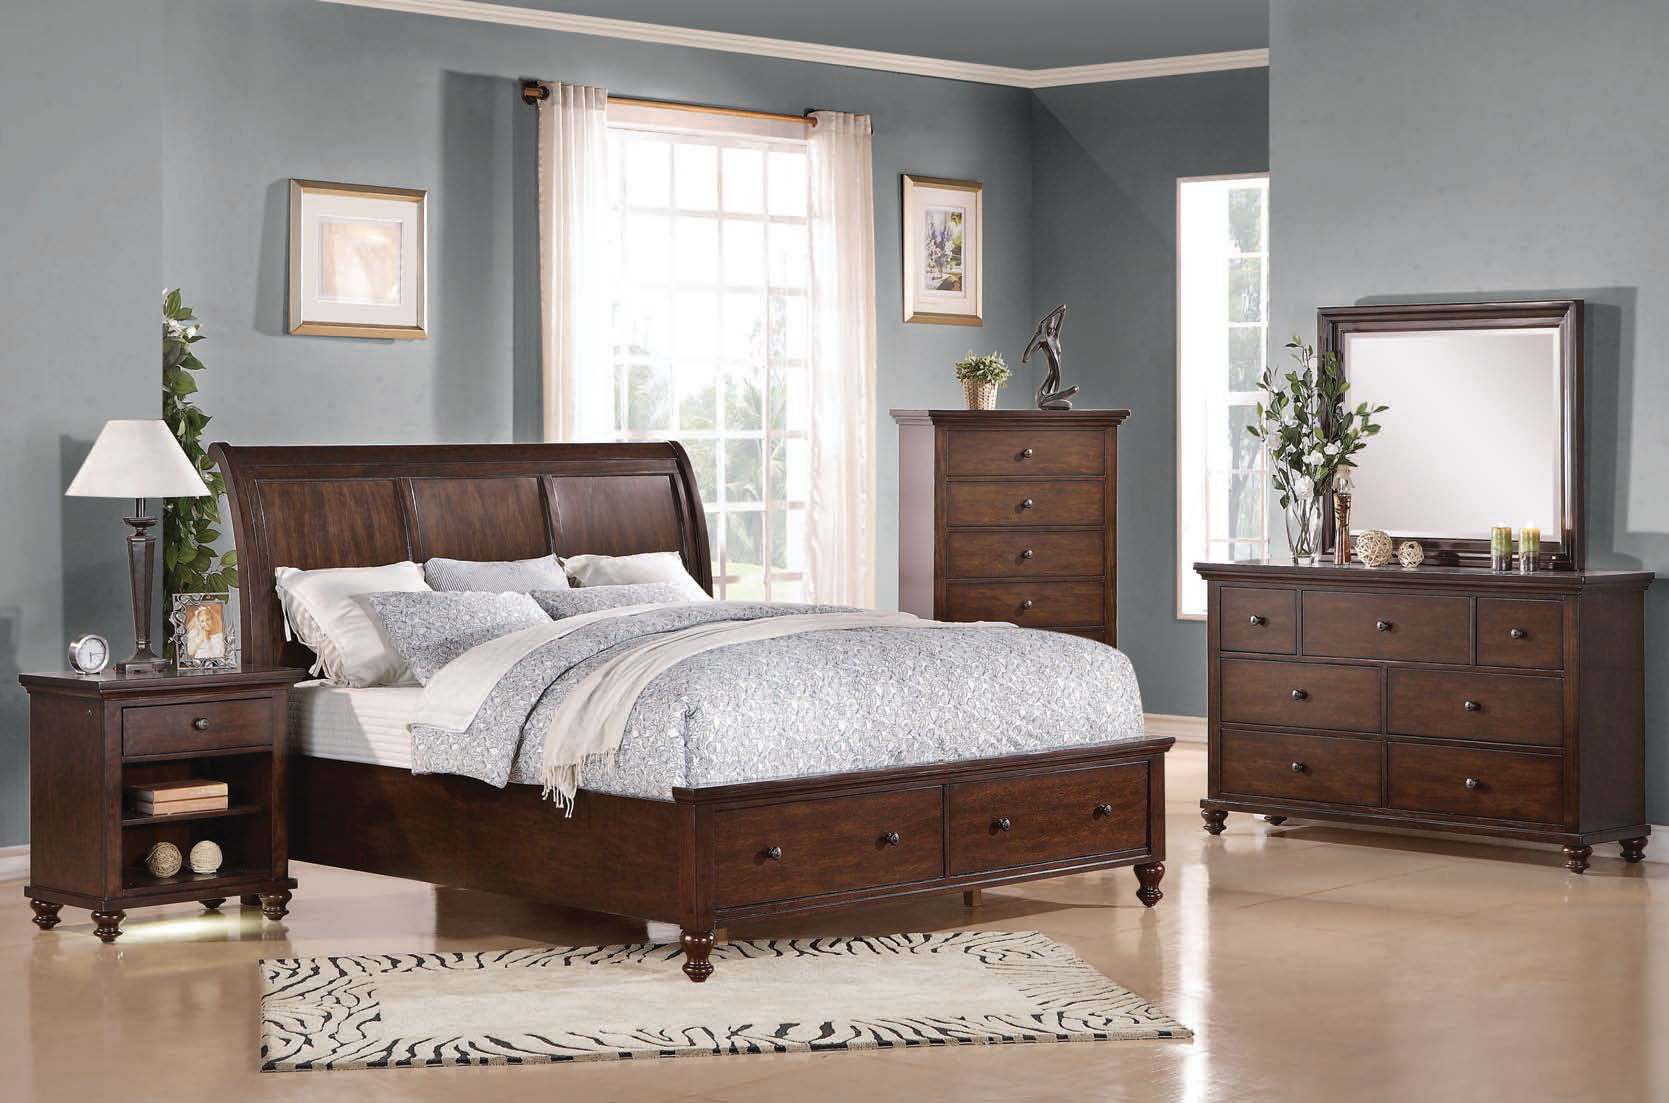 Aceline Coastal Brown Cherry Wood Master Bedroom Set The Classy Home